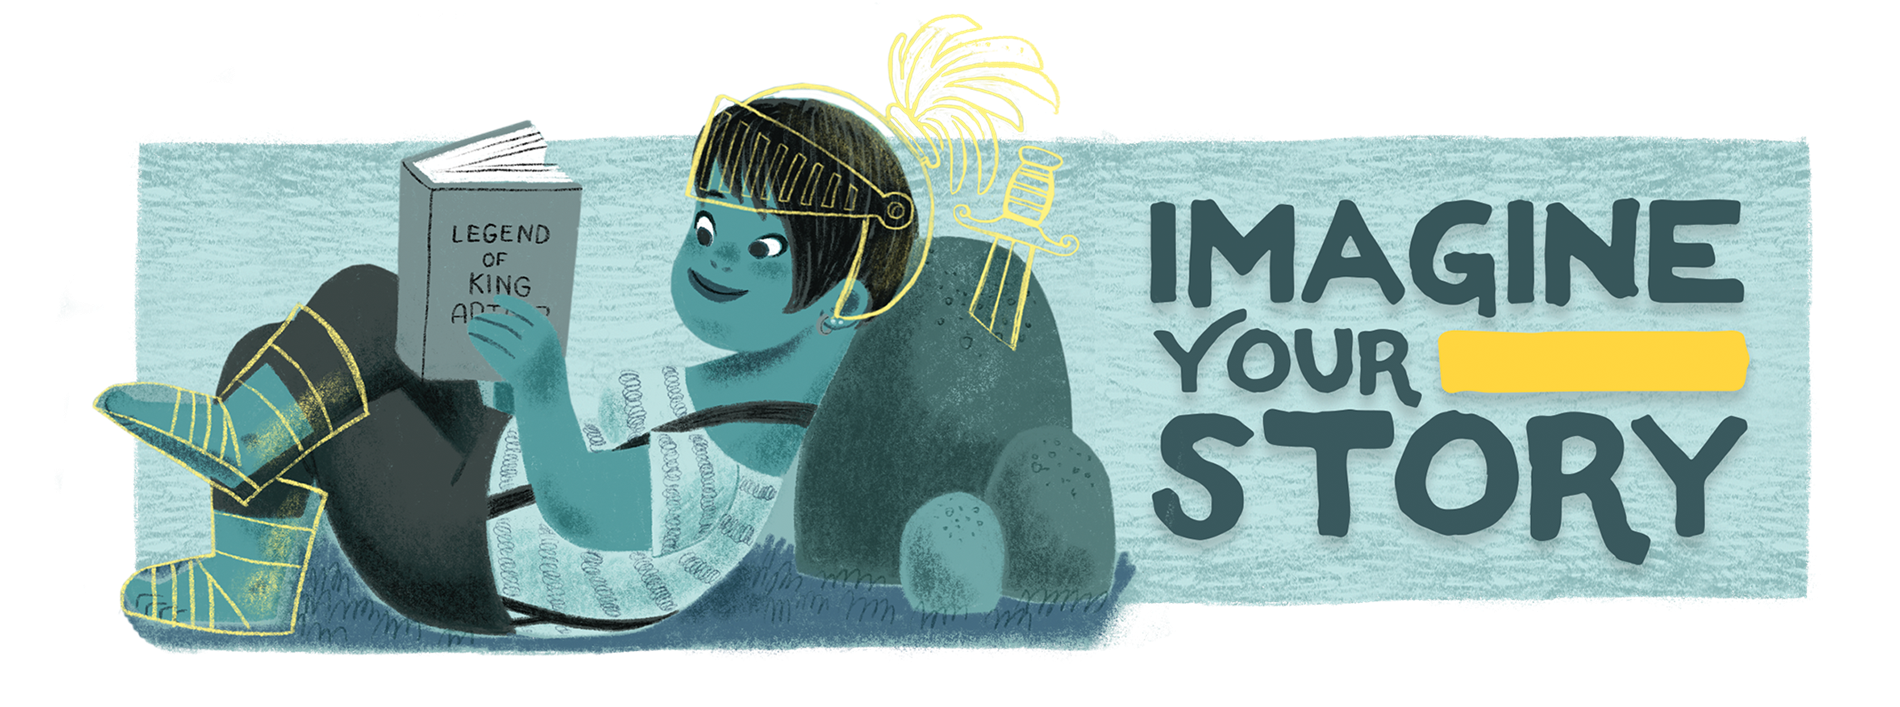 Imagine Your Story CSLP Adult summer reading banner